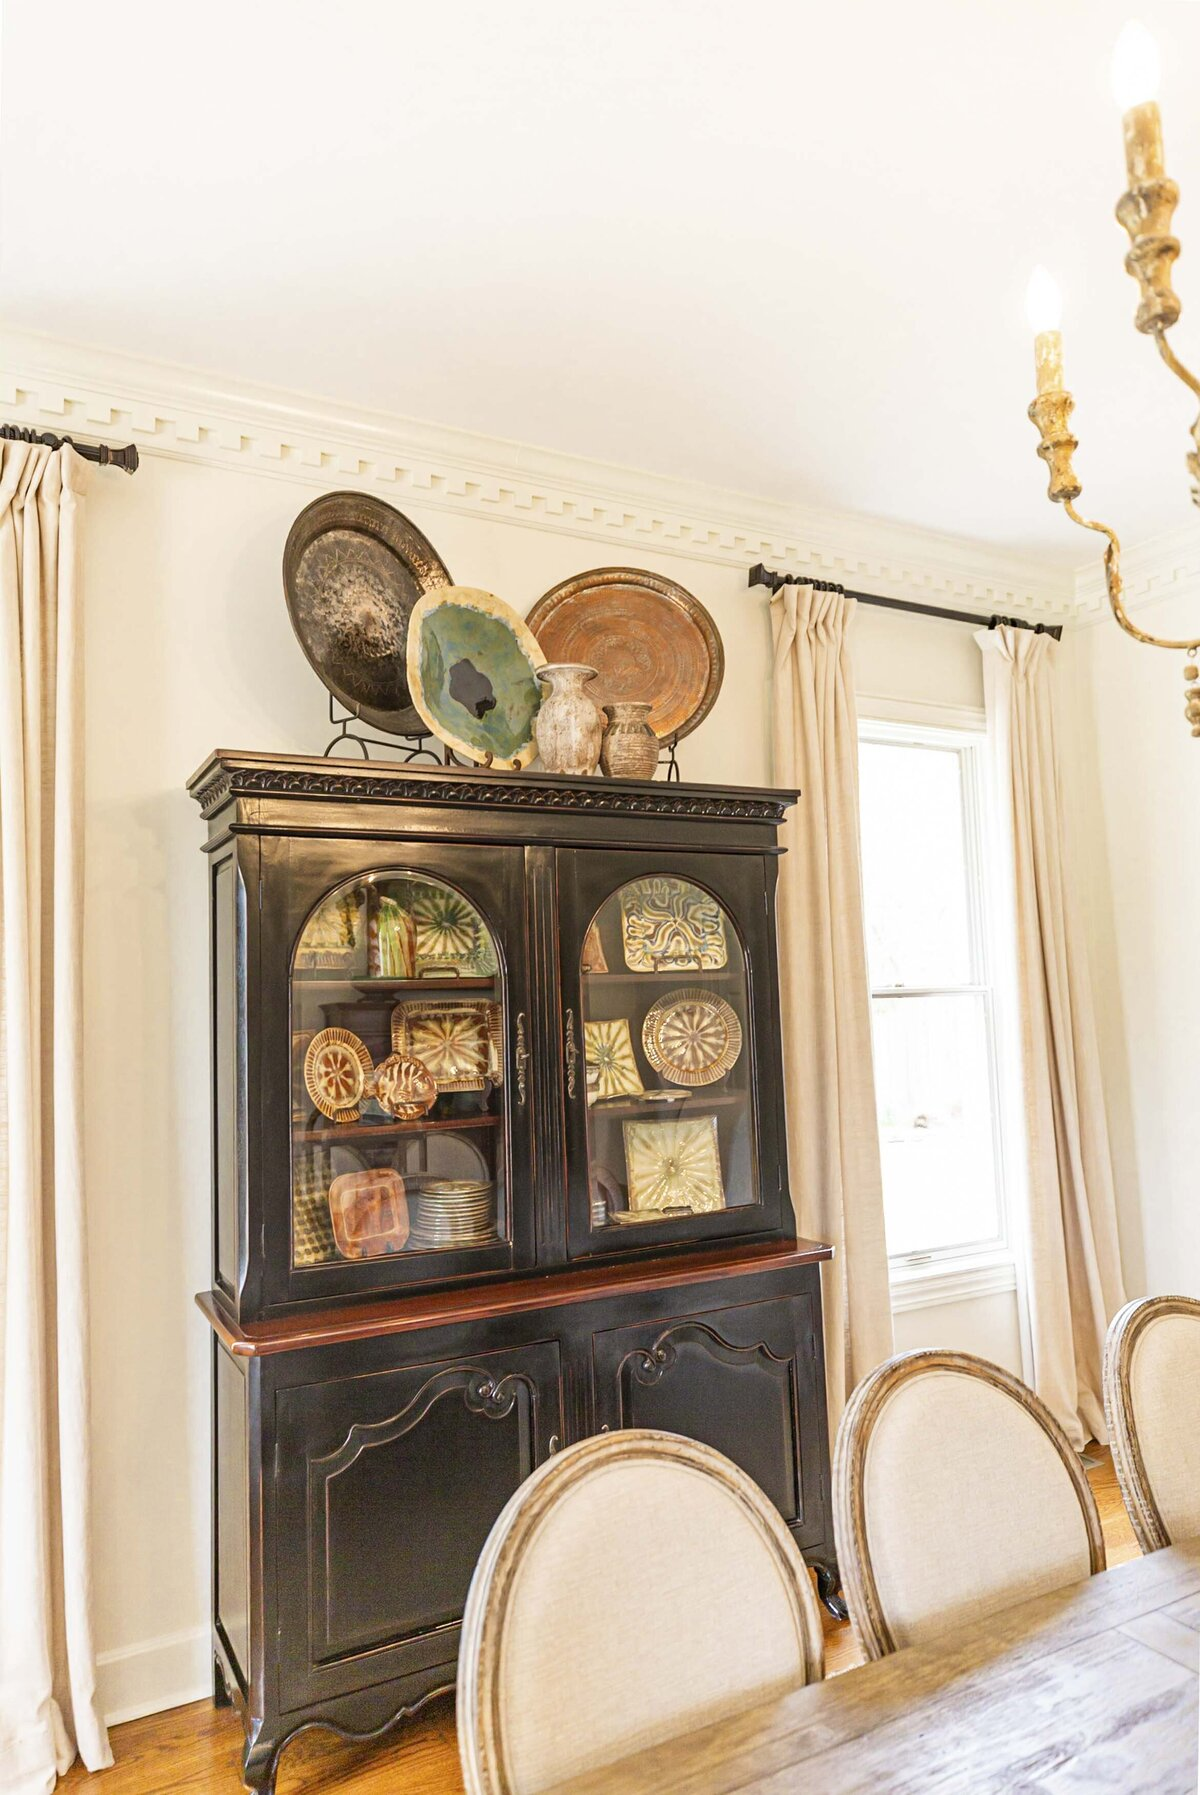 bright-dining-room-decor-textures-character-crown-molding11